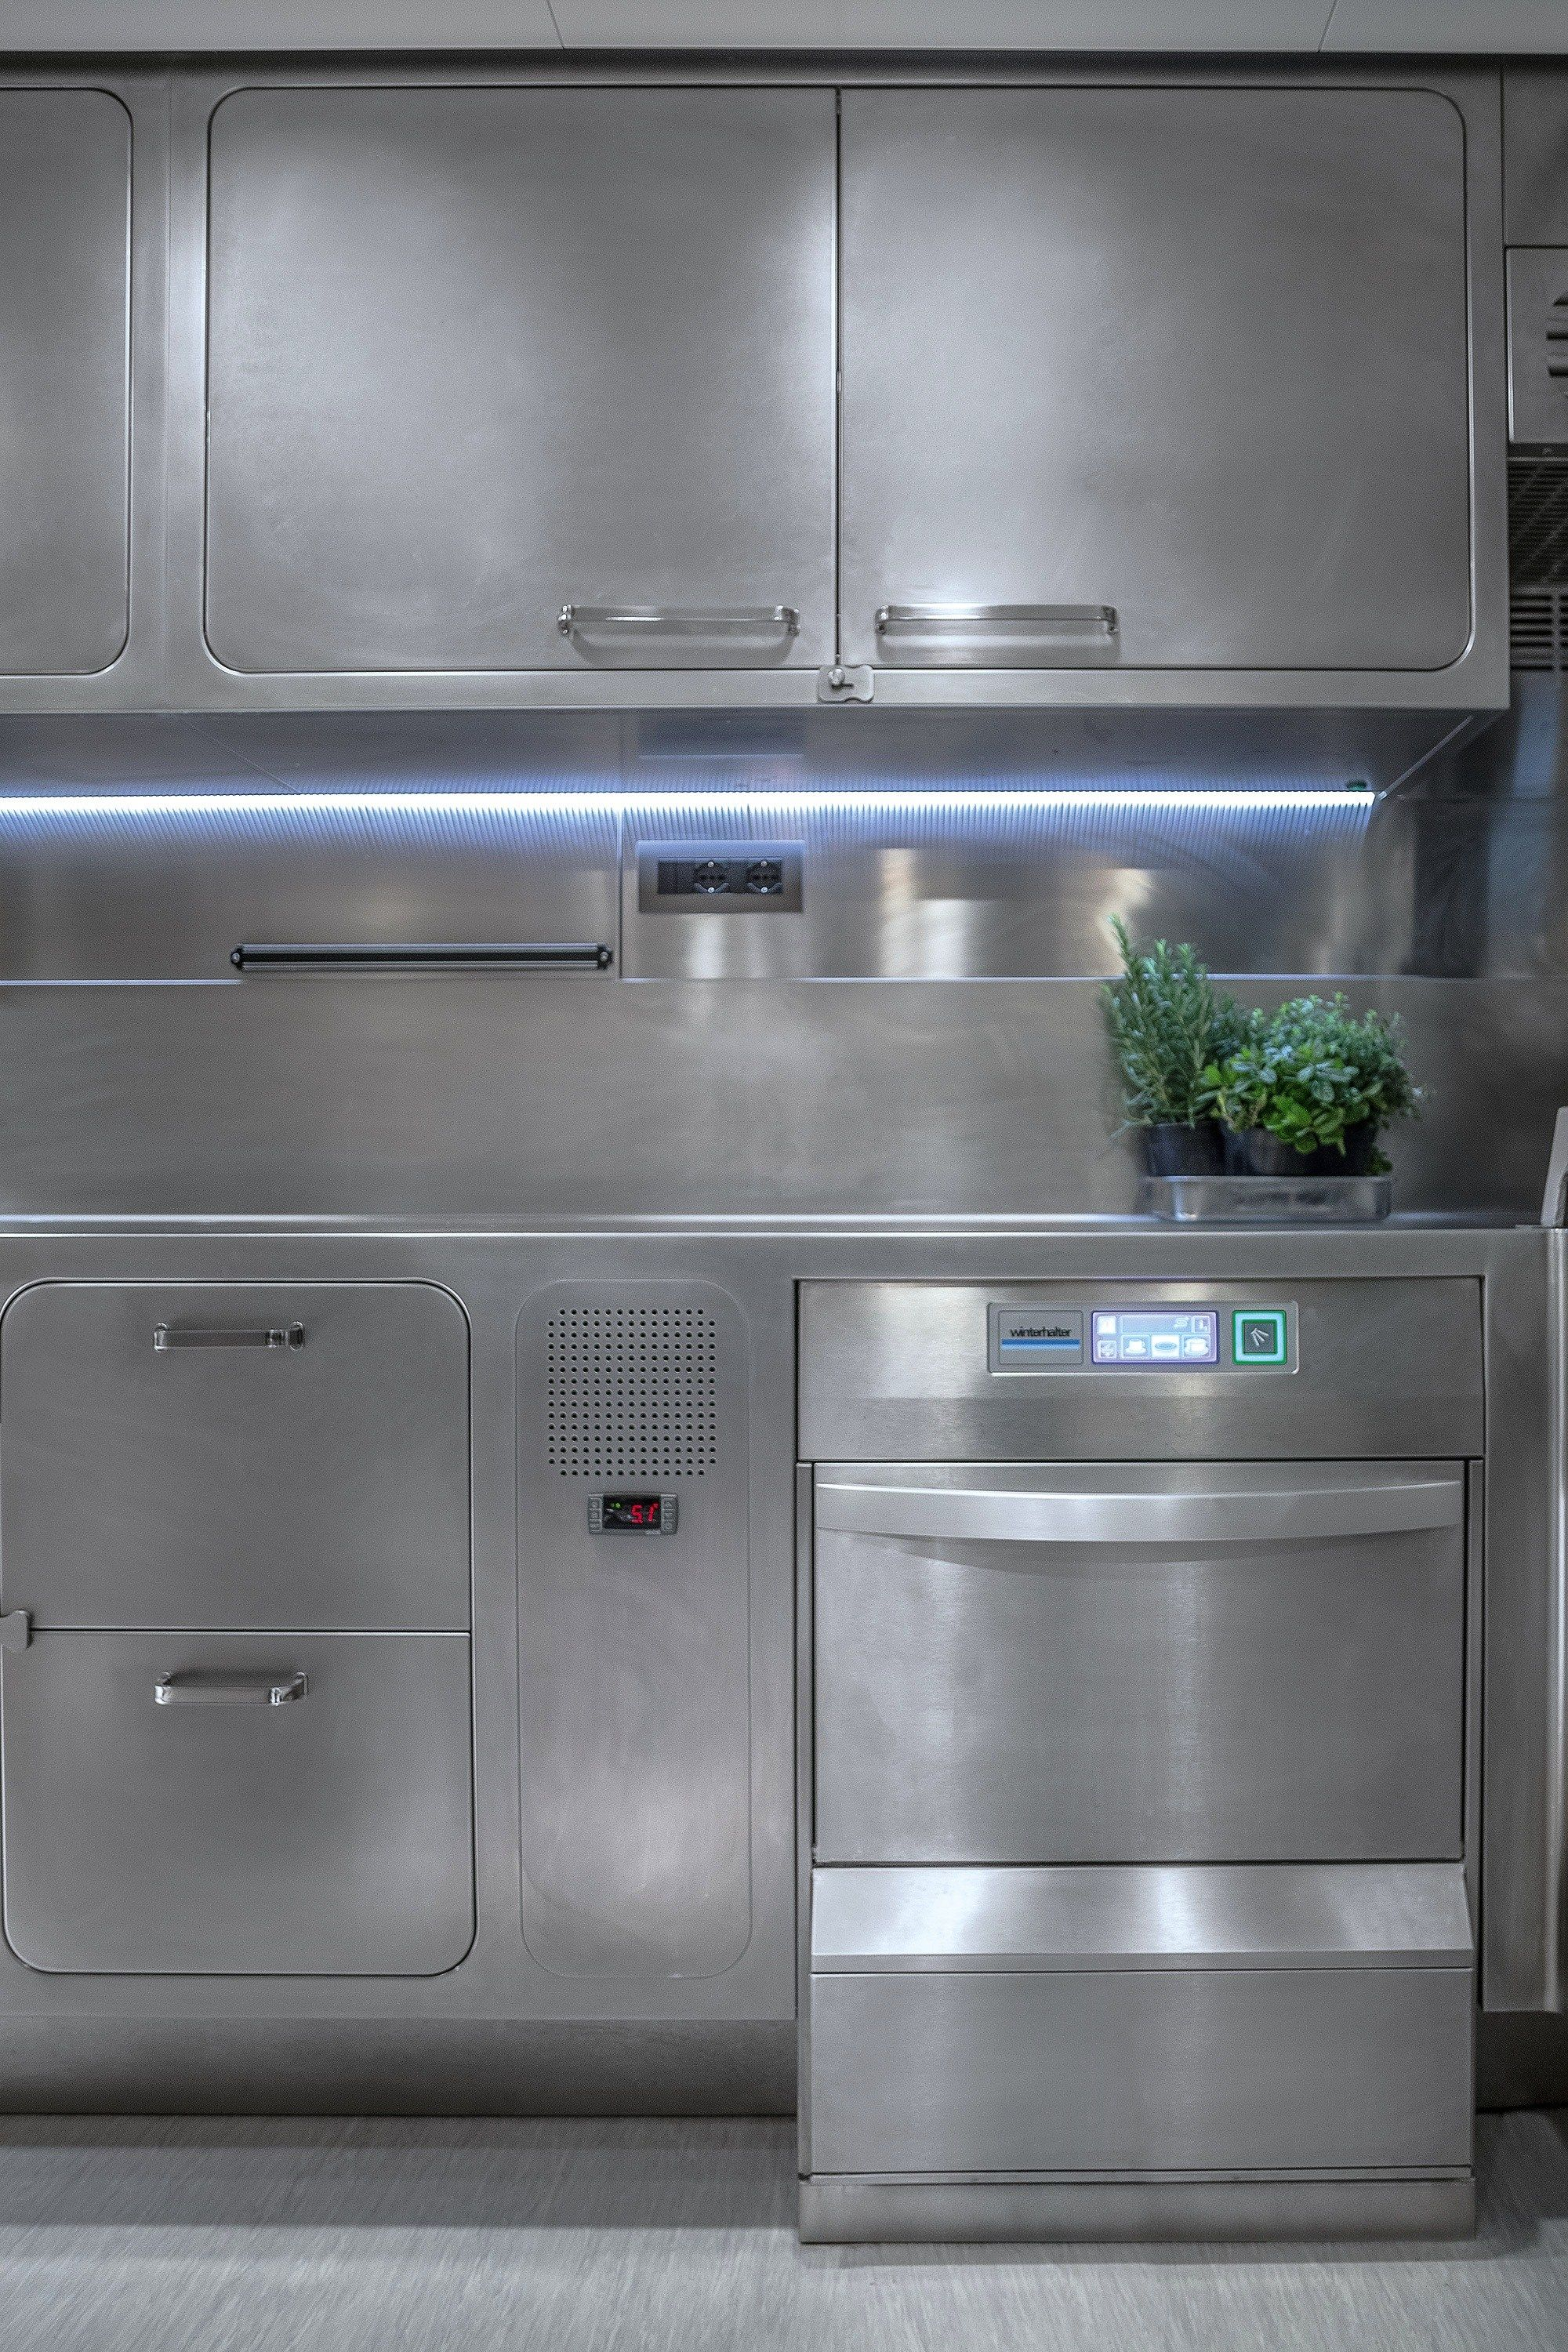 Professional Stainless Steel Kitchen Ego By Abimis Is A Prisma S R L Brandmark Design Alberto Tors Kitchen Design Kitchen Decor Stainless Steel Kitchen Design